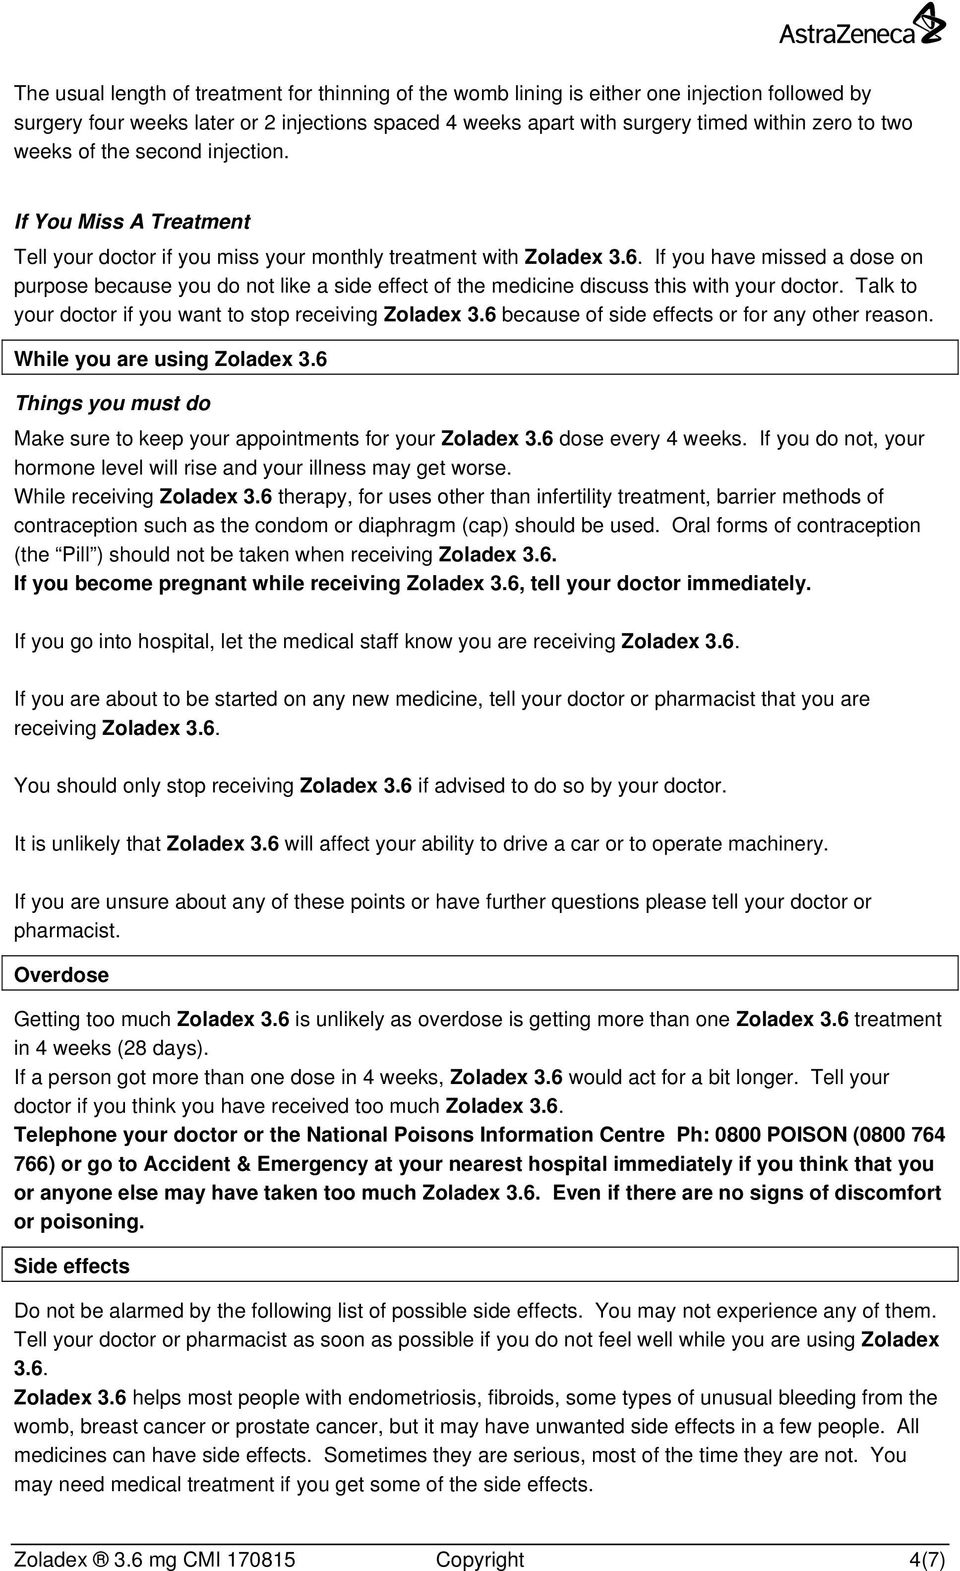 If you have missed a dose on purpose because you do not like a side effect of the medicine discuss this with your doctor. Talk to your doctor if you want to stop receiving Zoladex 3.